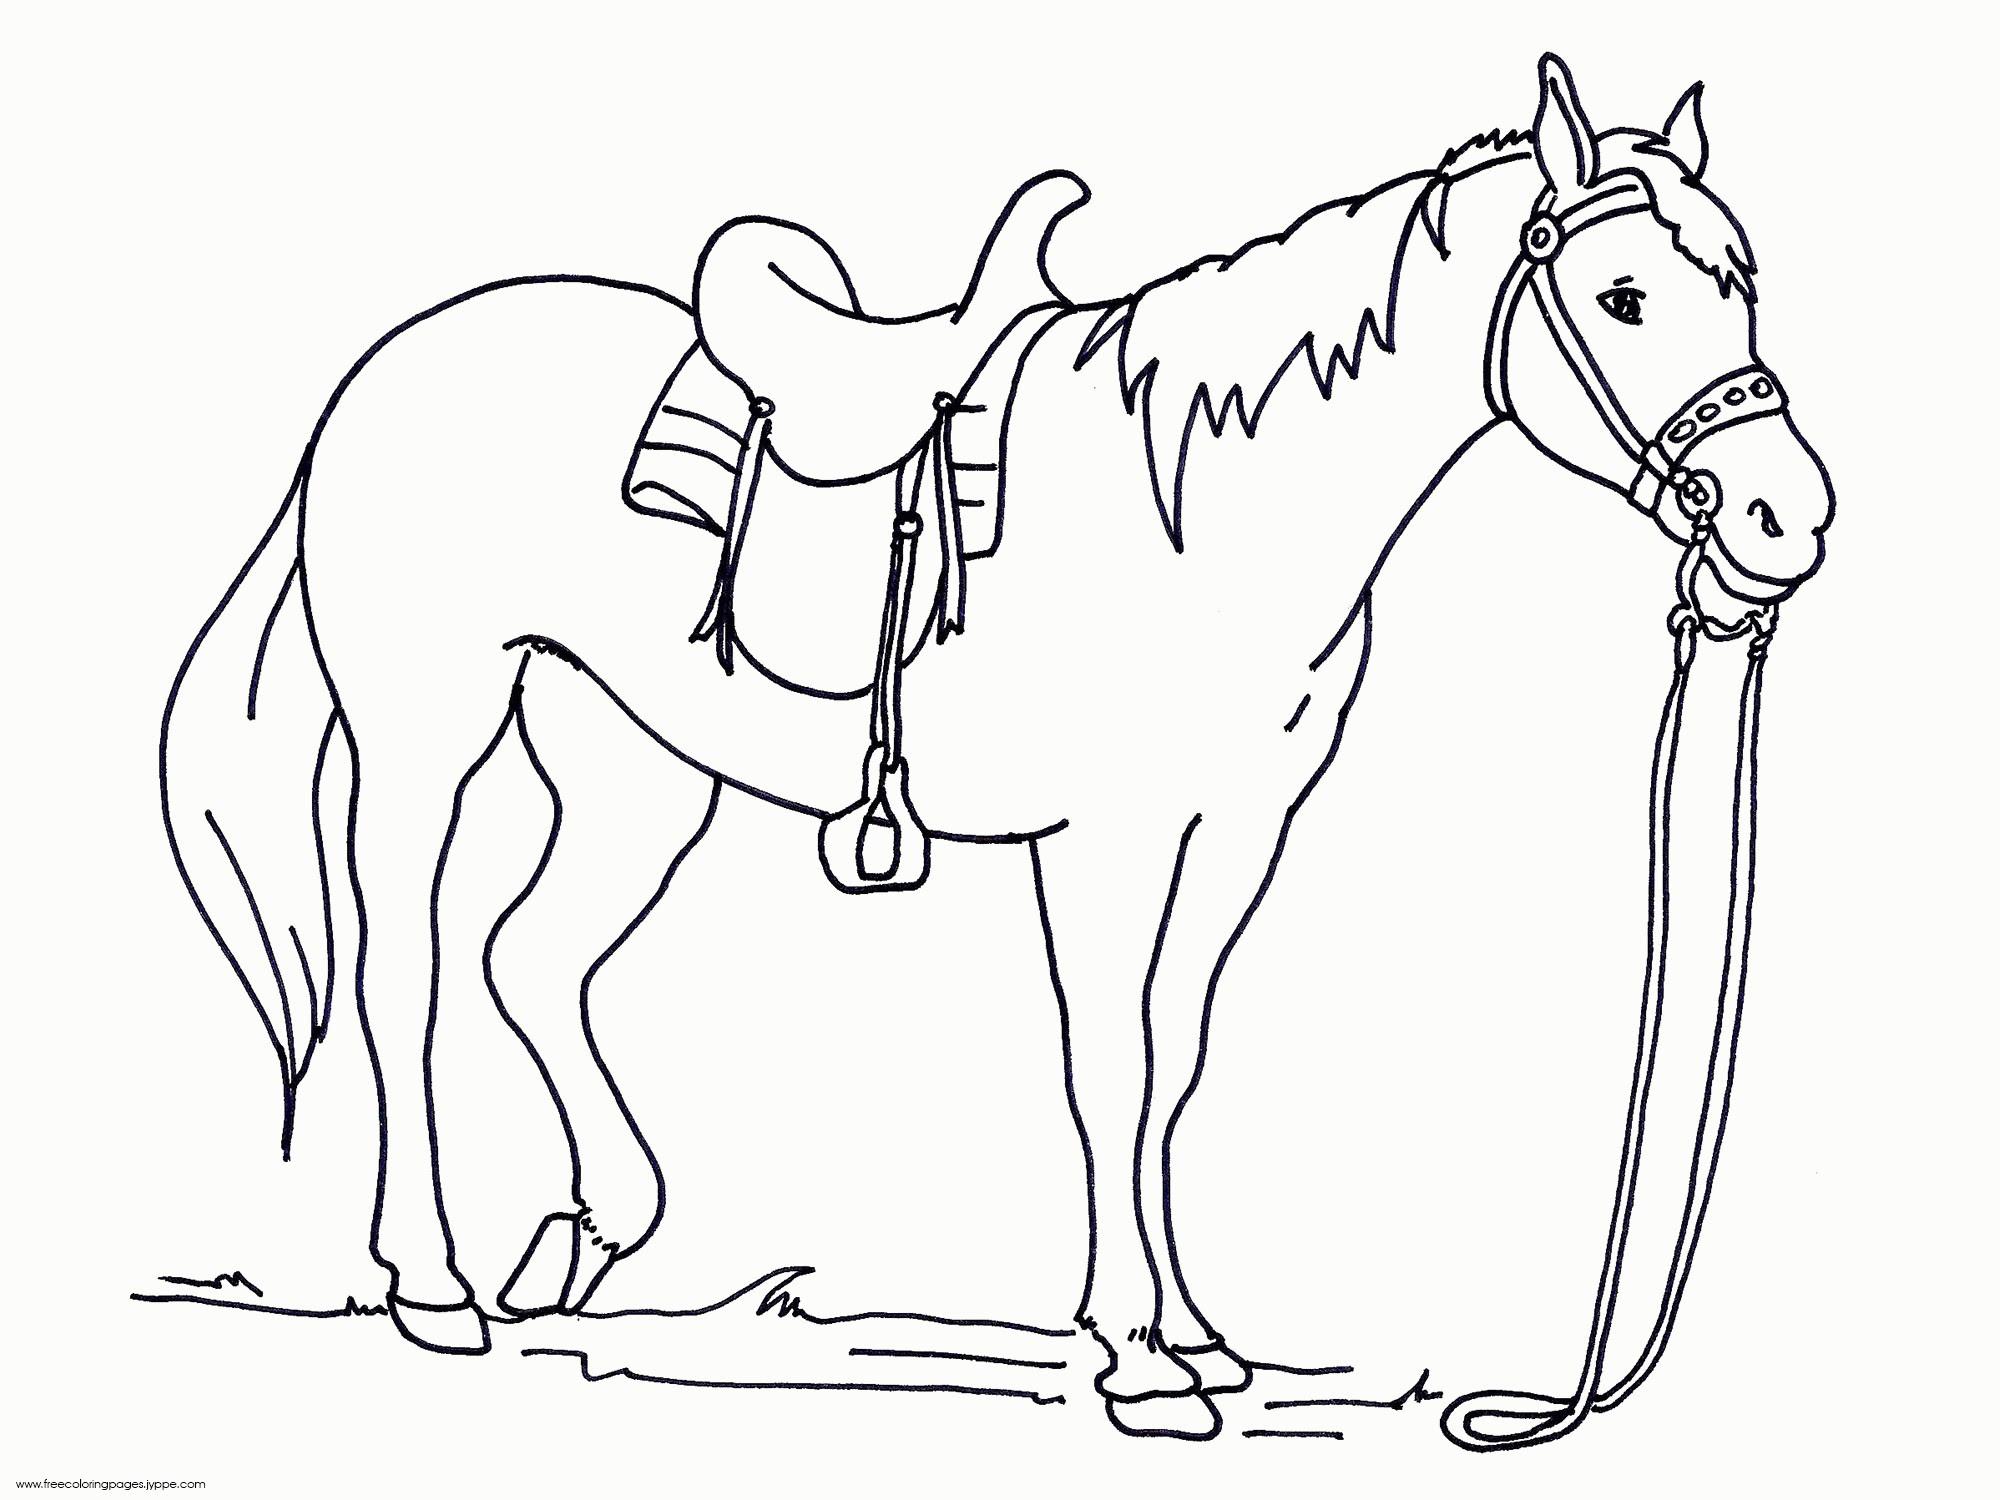 Arabian Horse Coloring Pages at GetColorings.com | Free ...